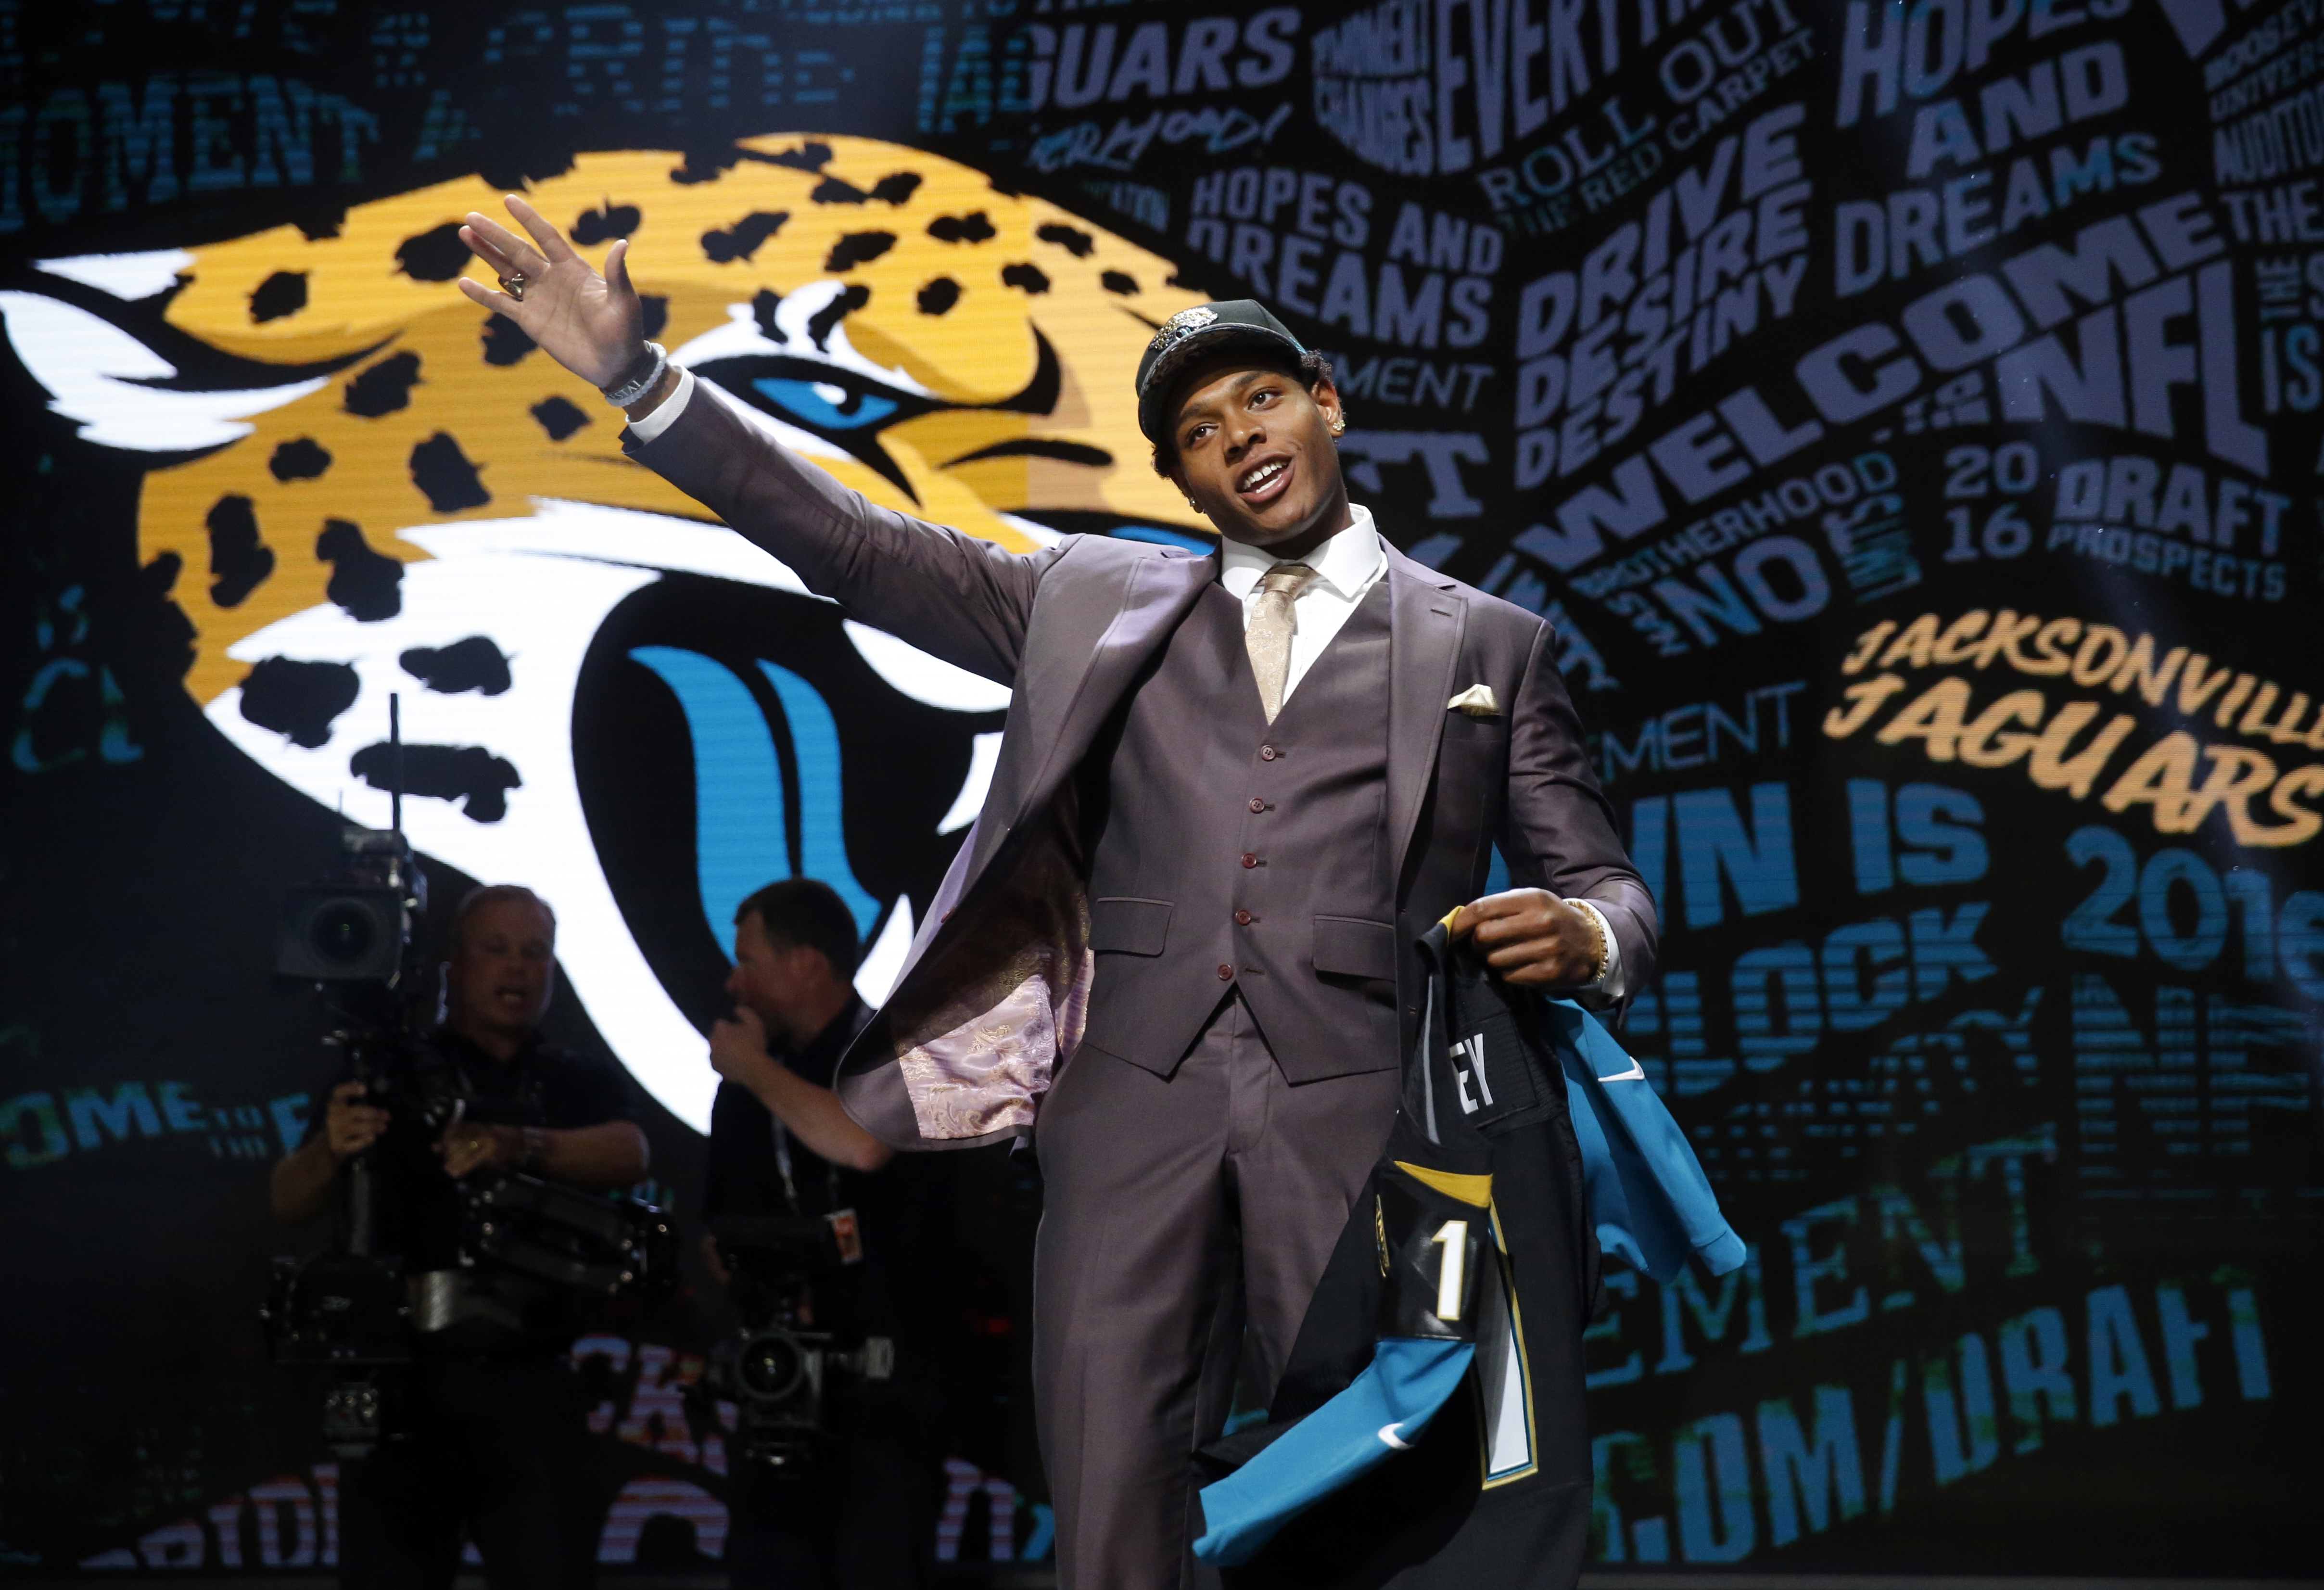 FILE - In this April 28, 2016, file photo, Florida State's Jalen Ramsey poses for photos after being selected by Jacksonville Jaguars as the fifth pick in the first round of the 2016 NFL football draft, in Chicago. Jaguars rookie cornerback Jalen Ramsey h